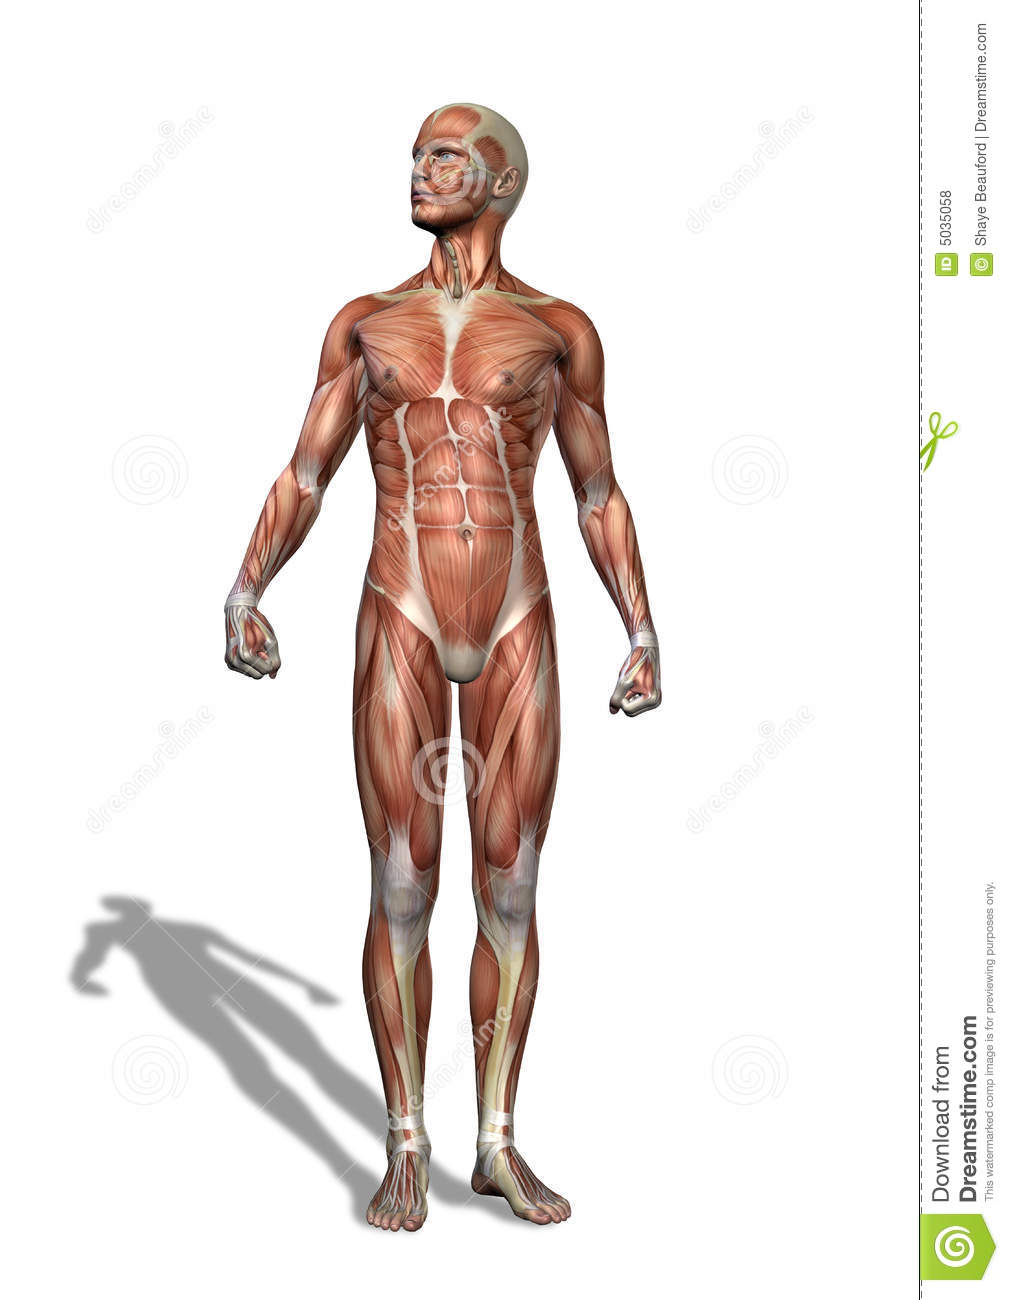 Male Musculature Standing